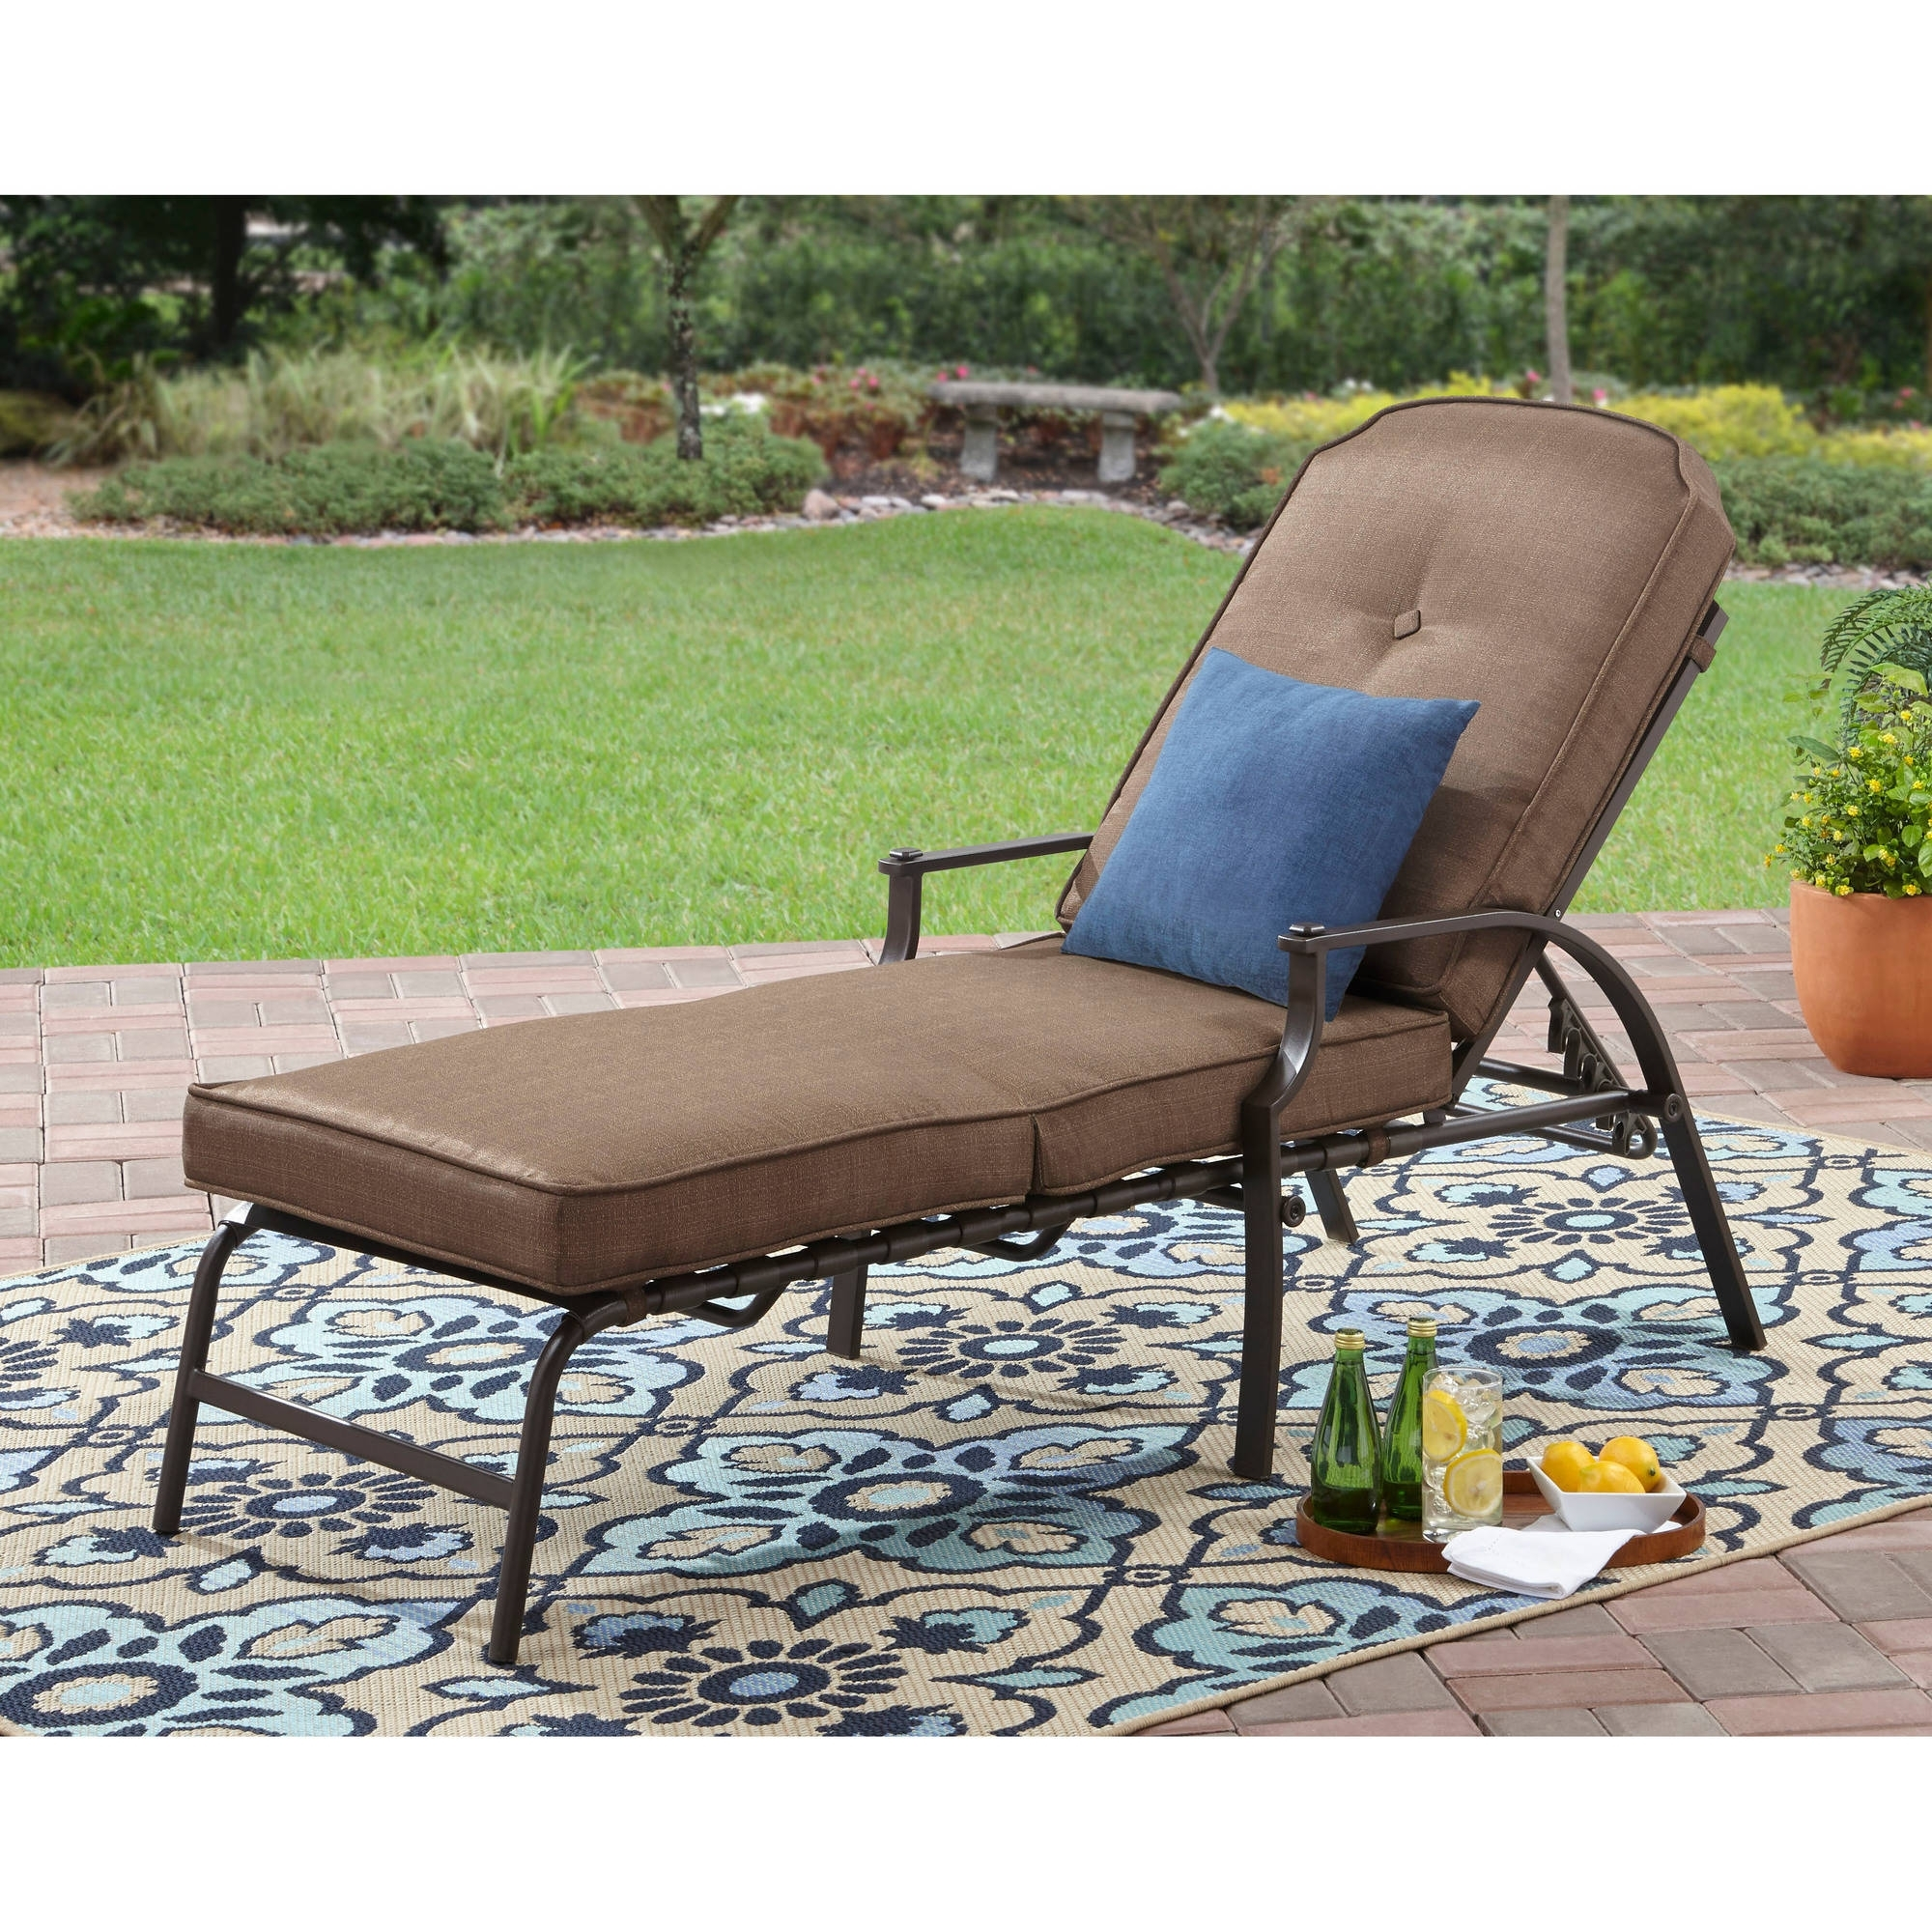 Mainstays Wentworth Chaise Lounge – Walmart Regarding Preferred Walmart Chaise Lounge Cushions (View 5 of 15)